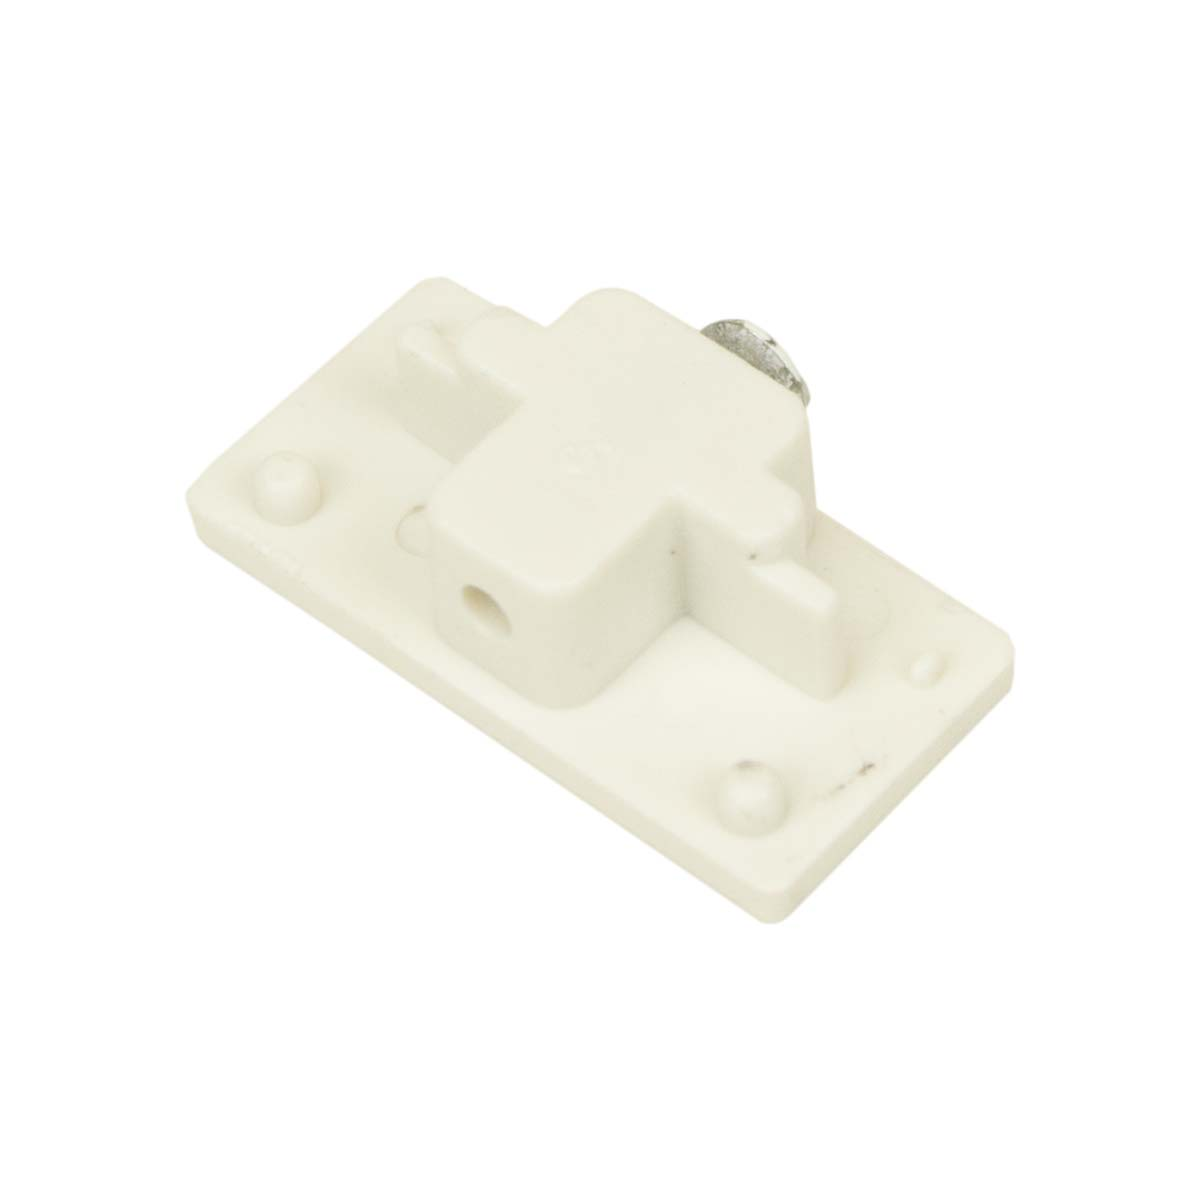 H System Single Track Lighting End Cap 50089 White